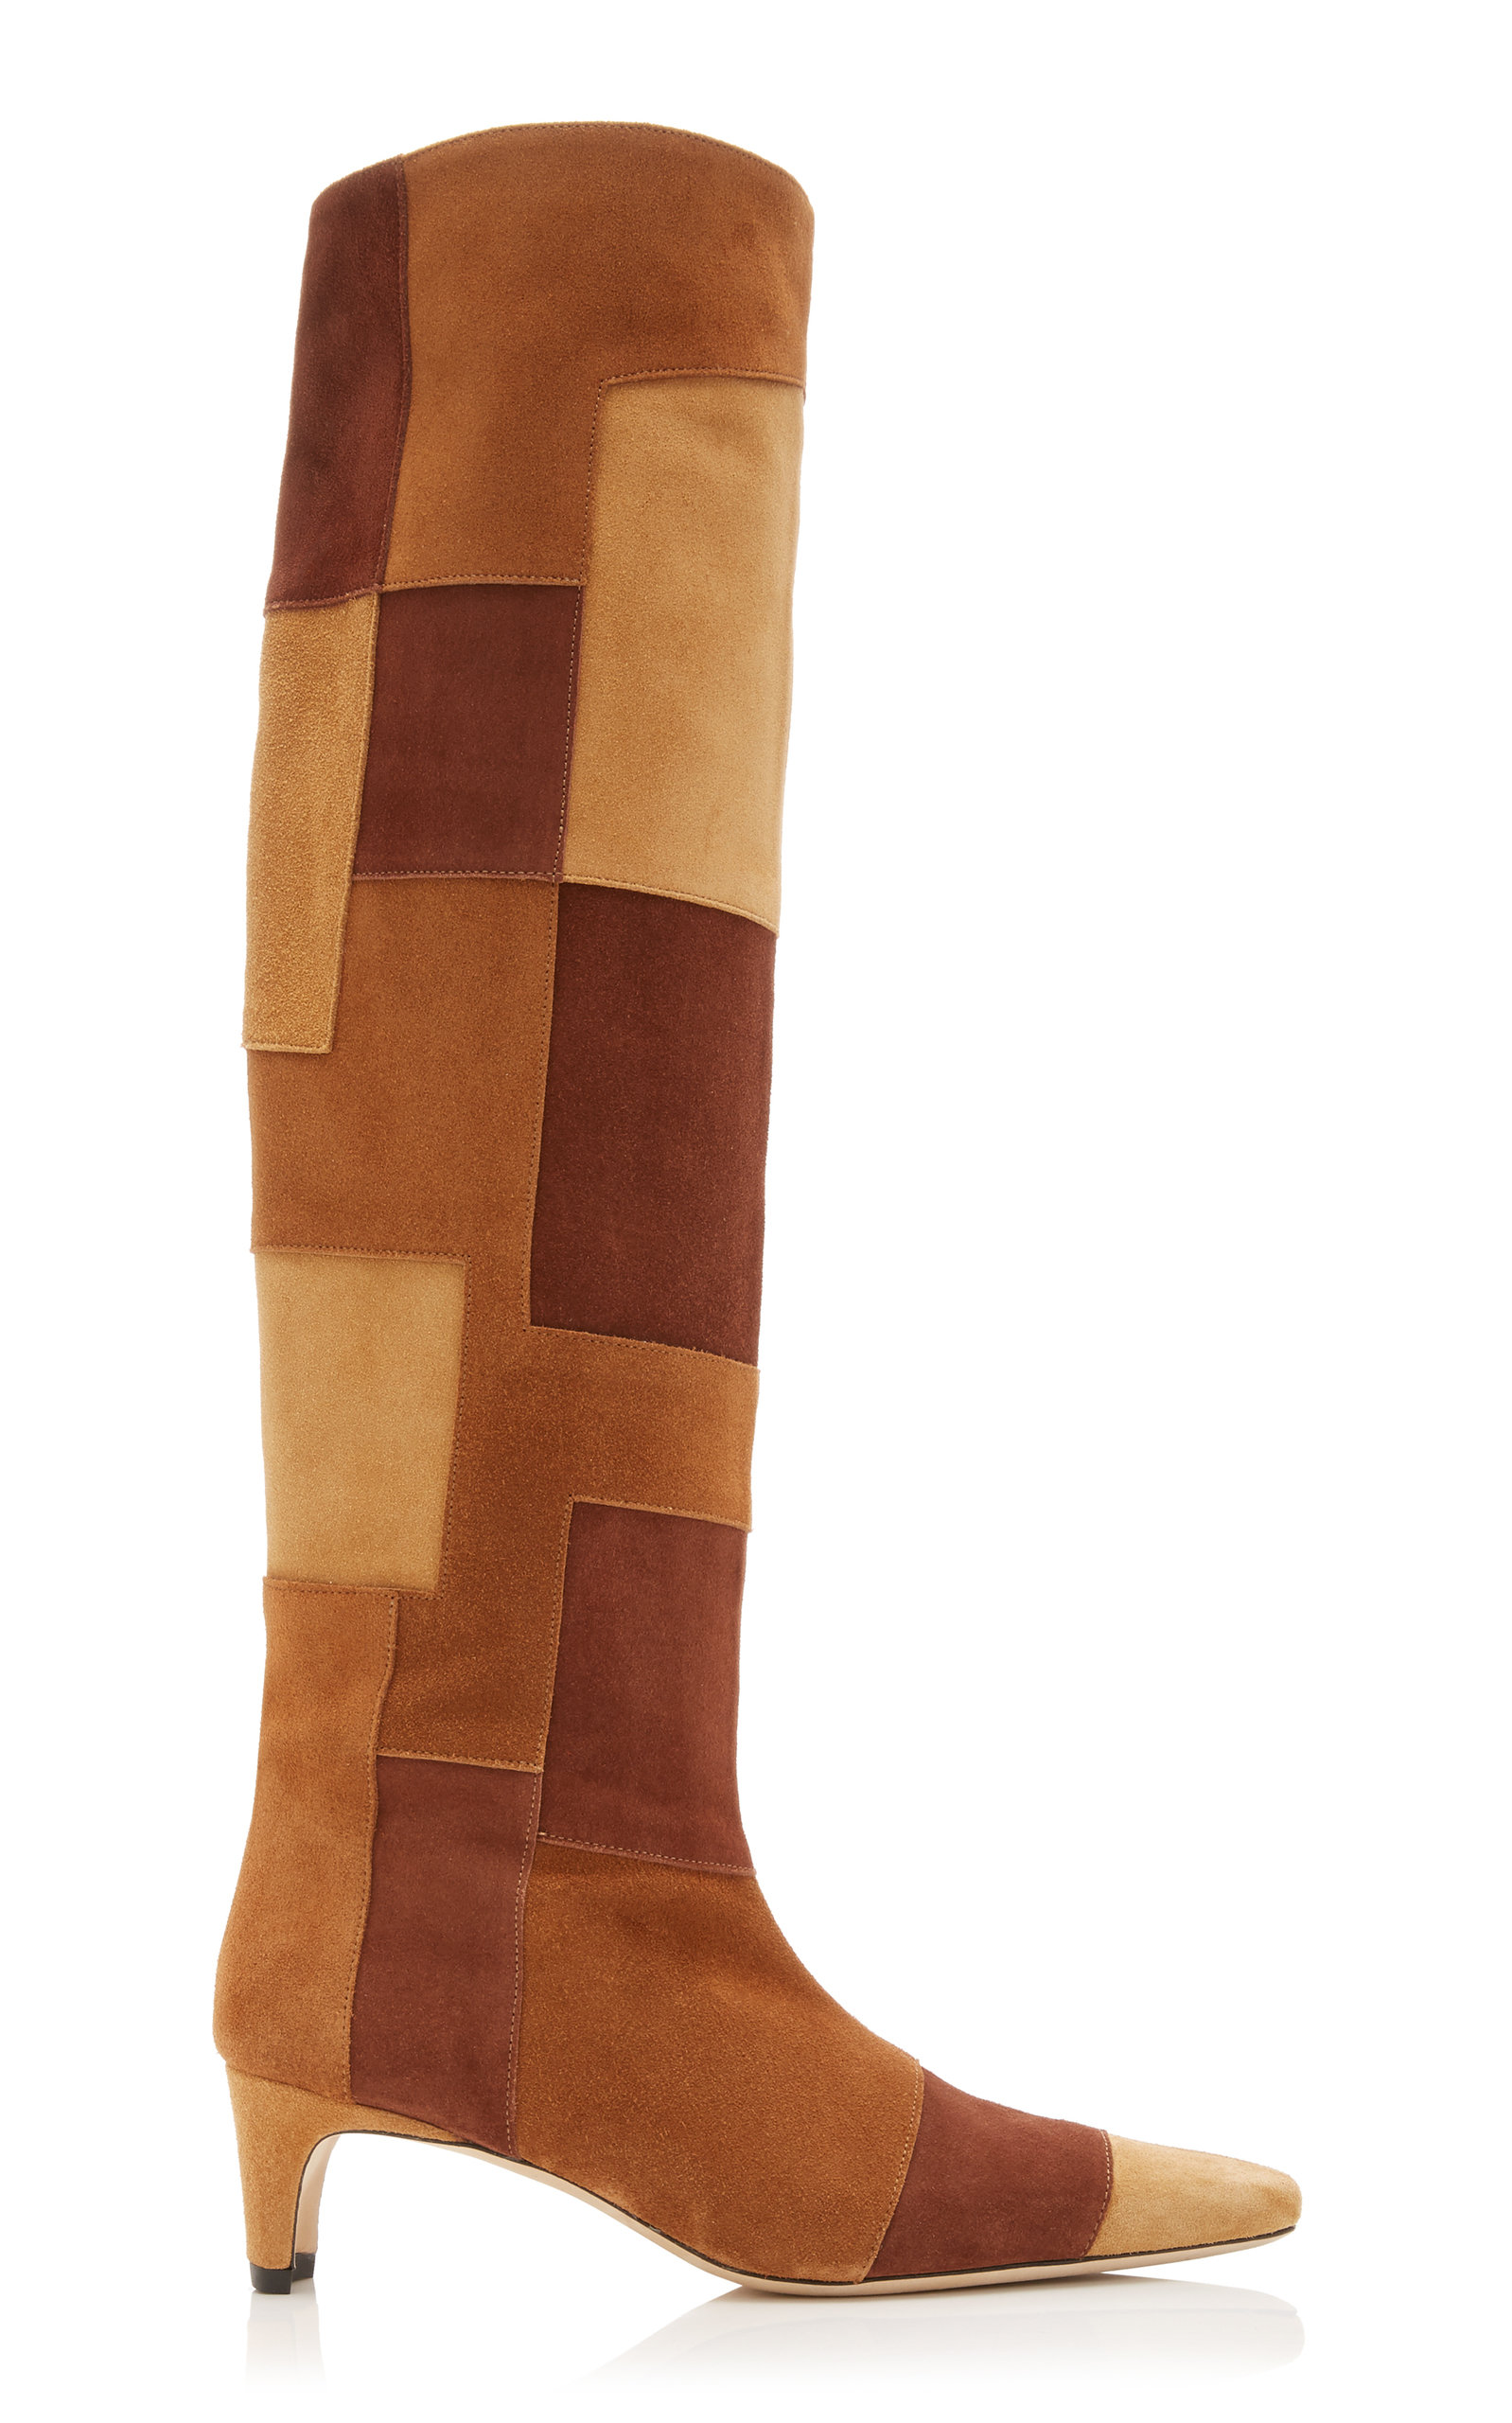 Staud WALLY PATCHWORK SUEDE KNEE-HIGH BOOTS